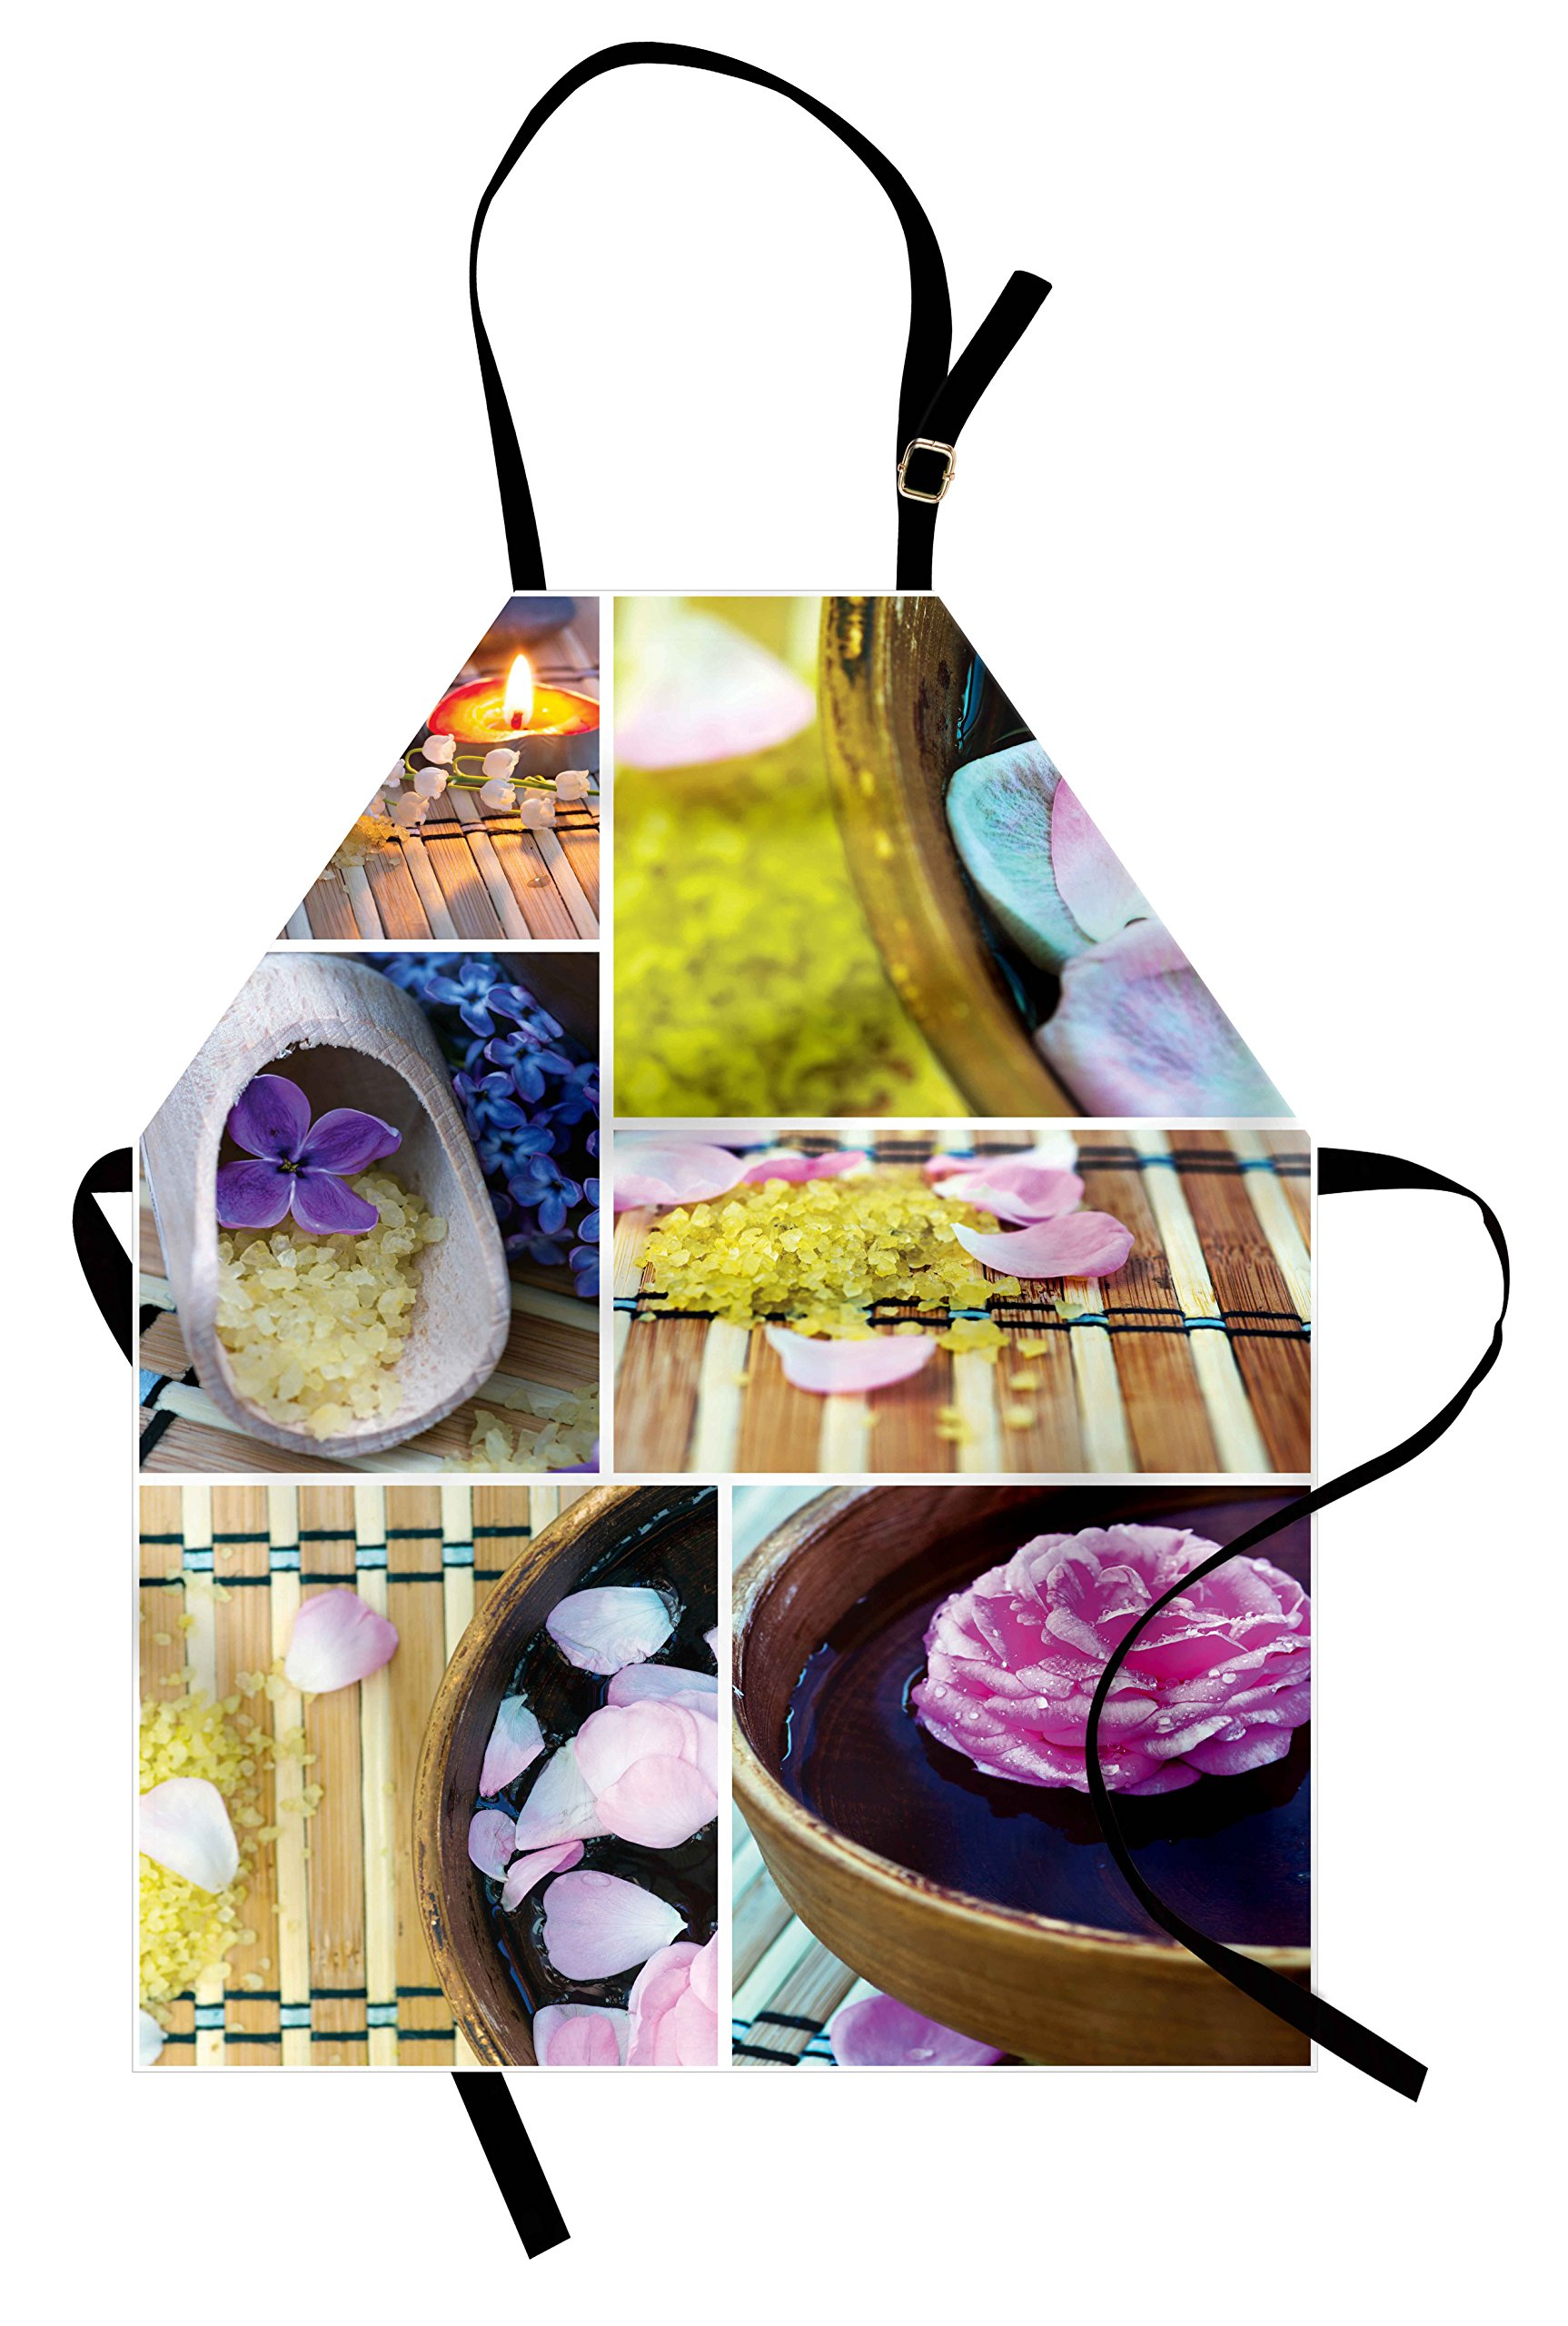 Ambesonne Spa Apron, Spa Organic Cosmetics Theme Wooden Bowl Petals Lavender Candle Pebbles Therapy Oil, Unisex Kitchen Bib Apron with Adjustable Neck for Cooking Baking Gardening, Purple Brown